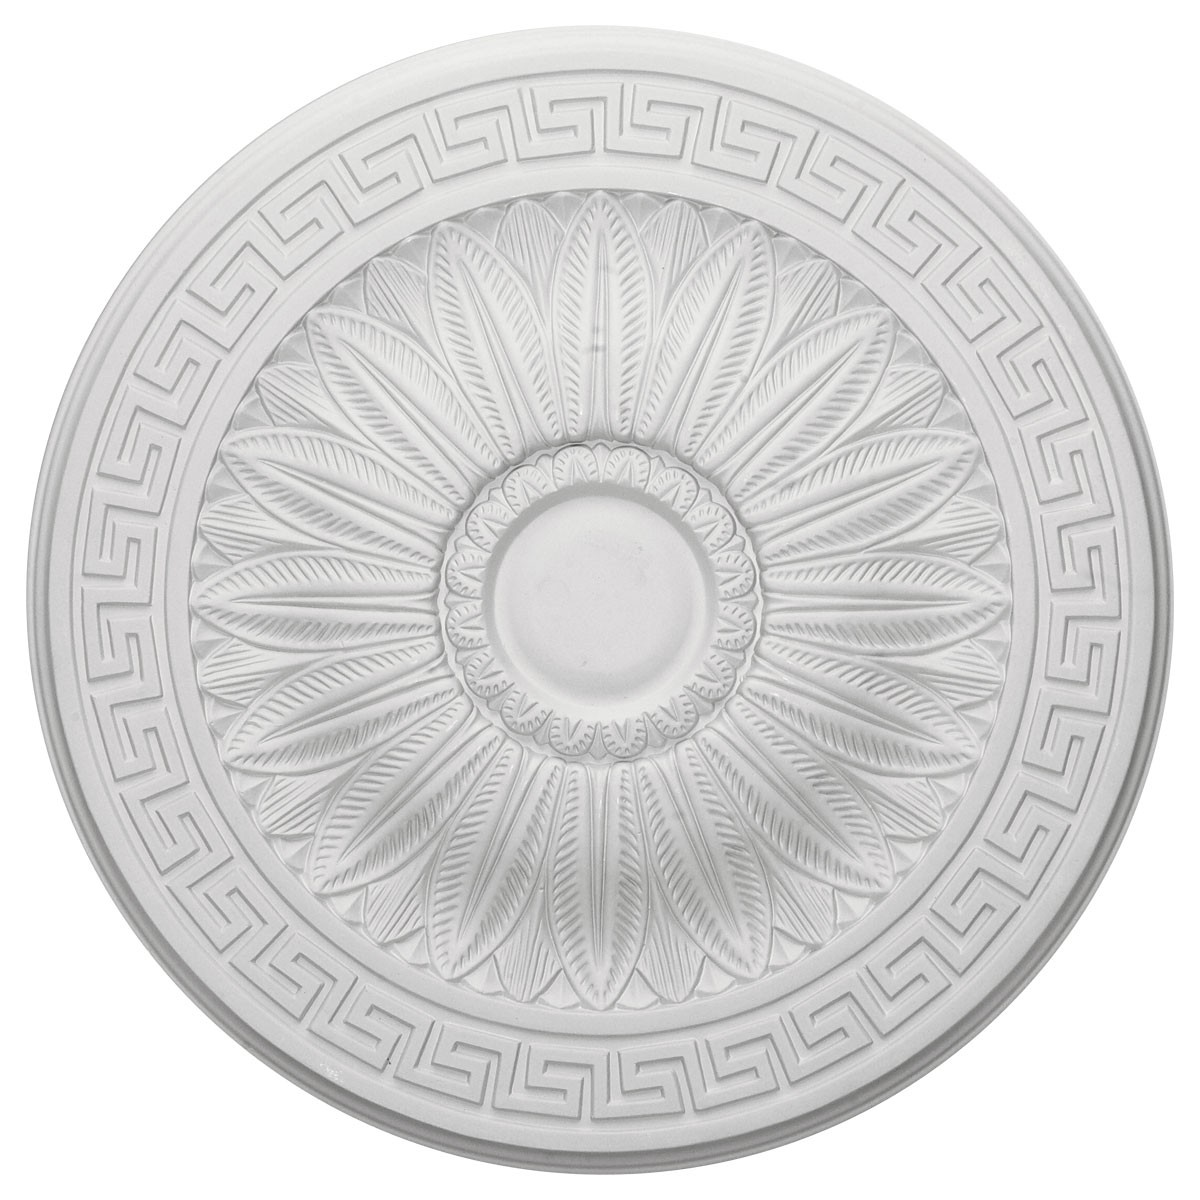 "EM-CM20HA - 20""OD x 1 3/8""P Randee Ceiling Medallion (Fits Canopies up to 3 7/8"")"